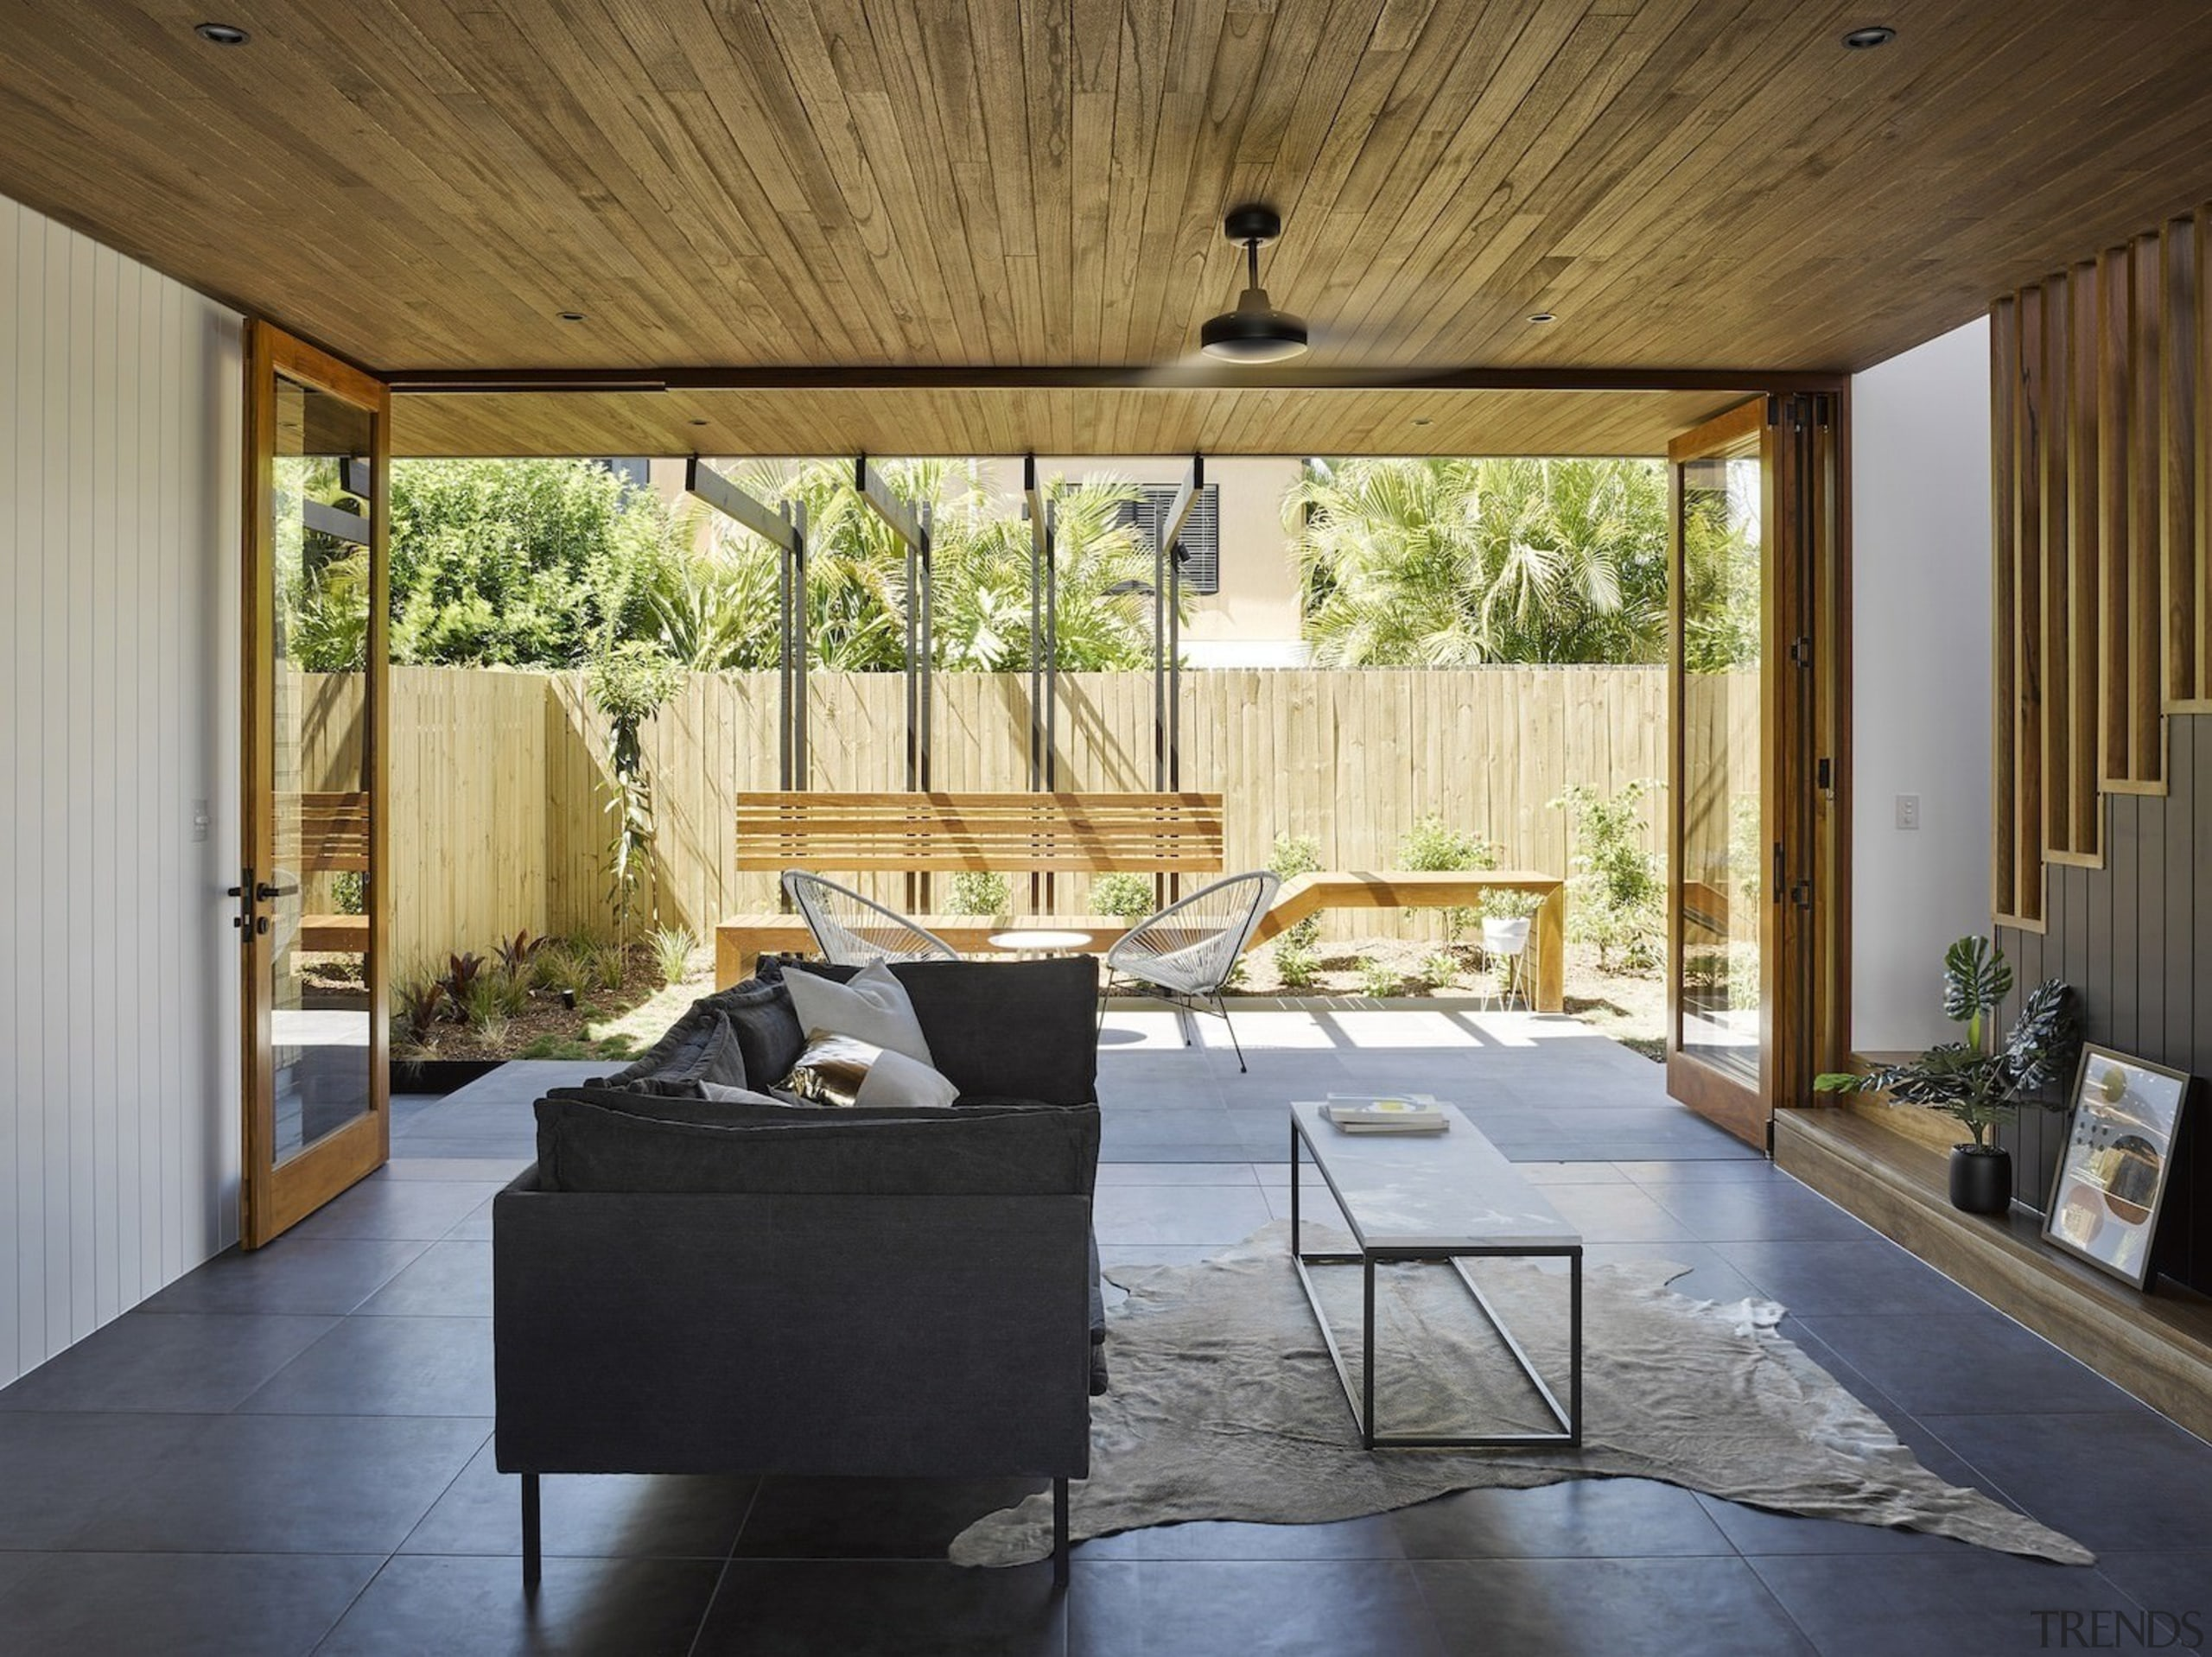 Architect: Refresh DesignPhotography by Roger D'Souza architecture, backyard, ceiling, daylighting, estate, floor, home, house, interior design, living room, patio, porch, property, real estate, shade, wall, window, window treatment, wood, brown